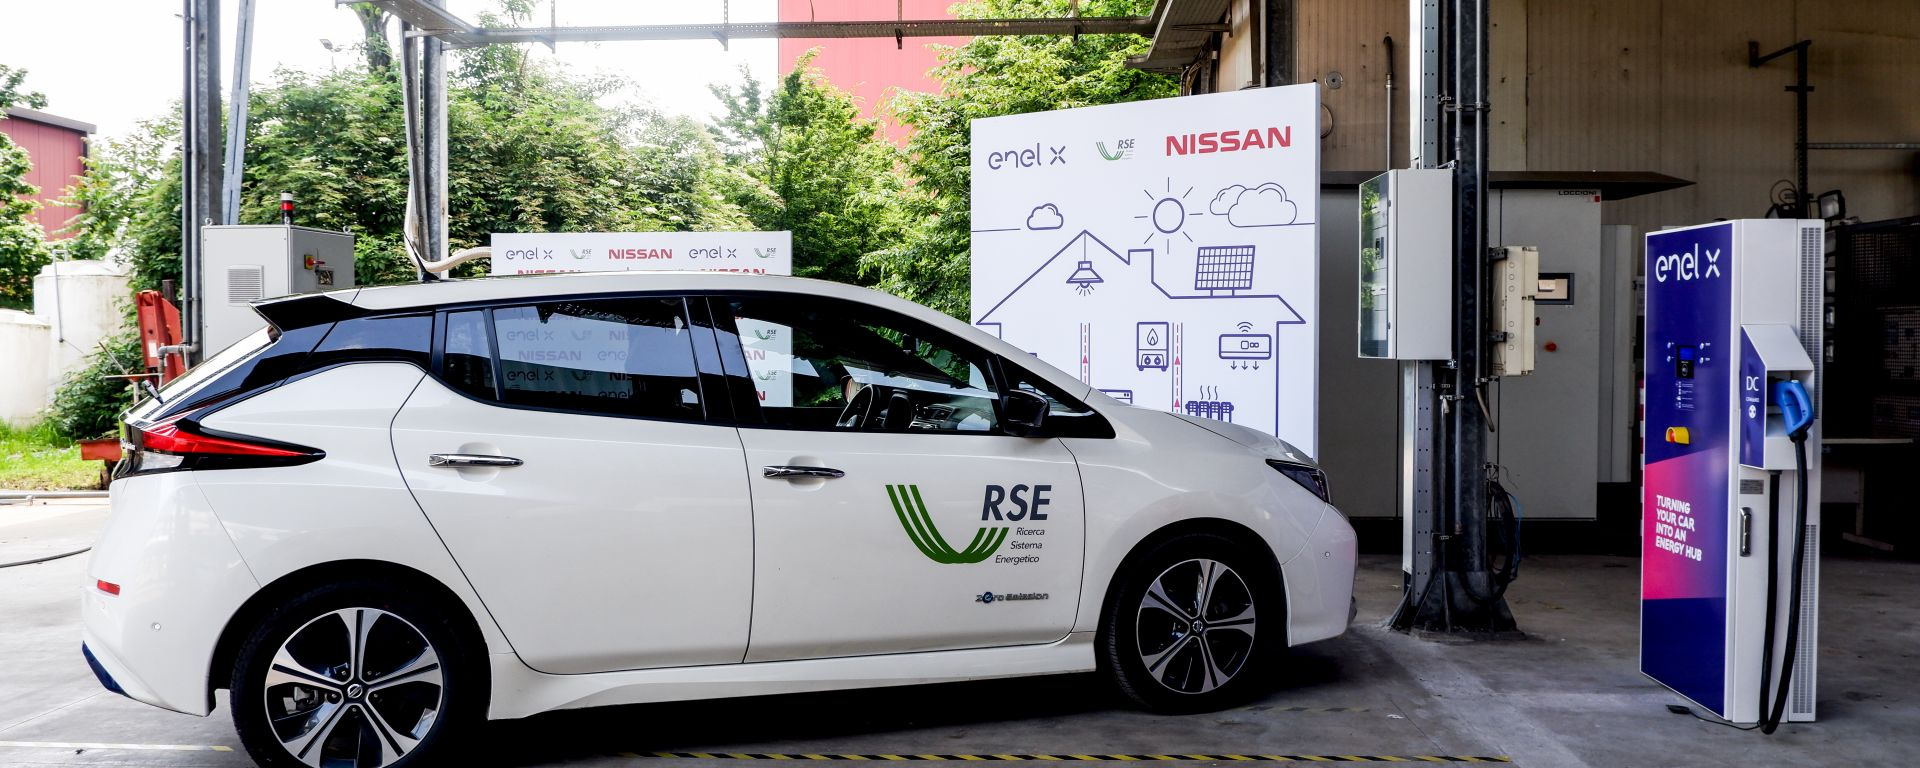 Nissan, Enel X e RSE sperimentano per primi Vehicle to Grid lato